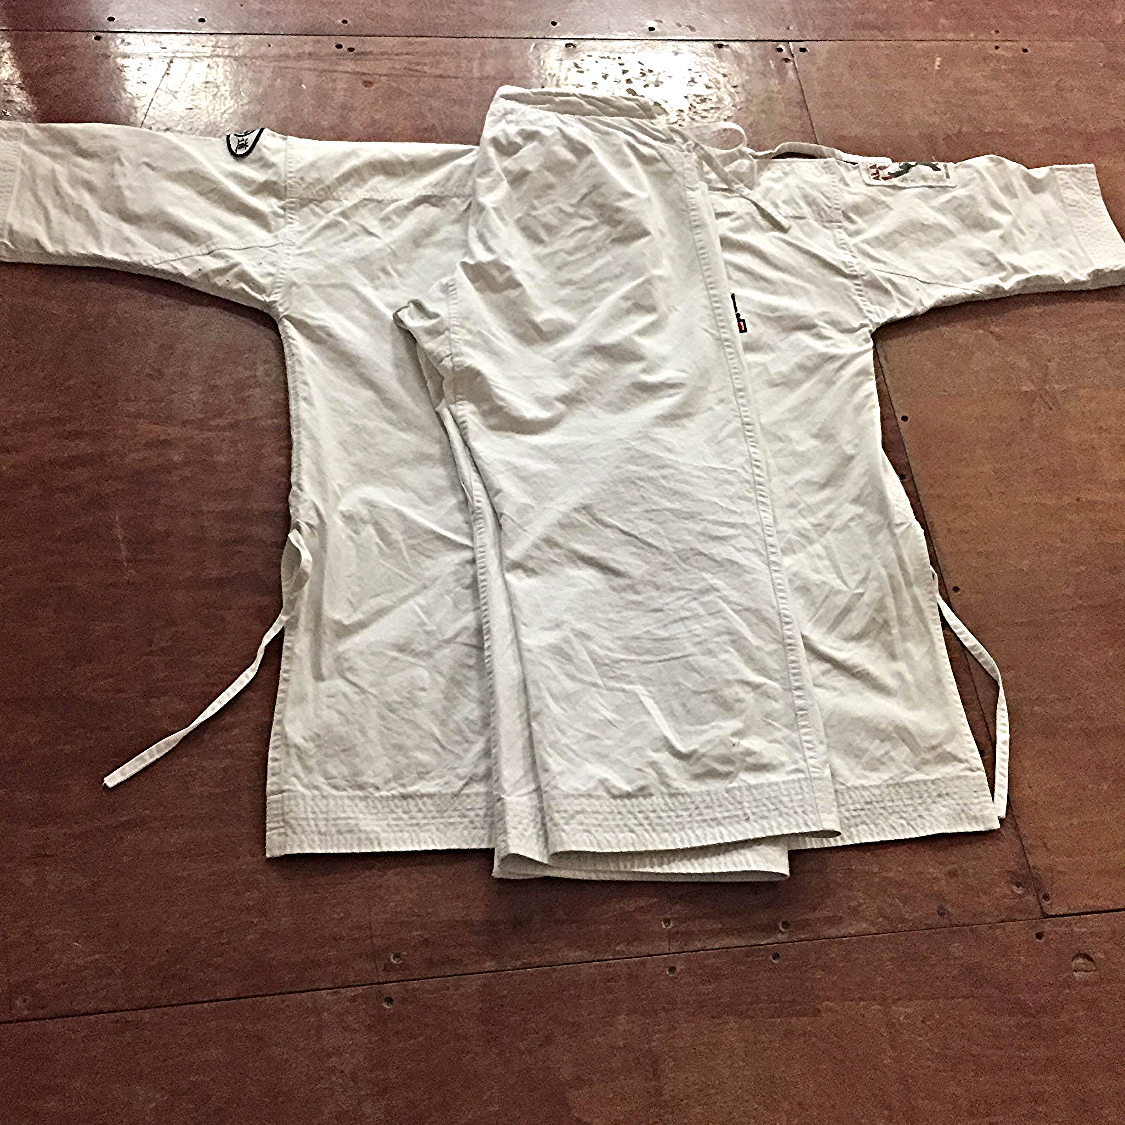 How to fold your gi